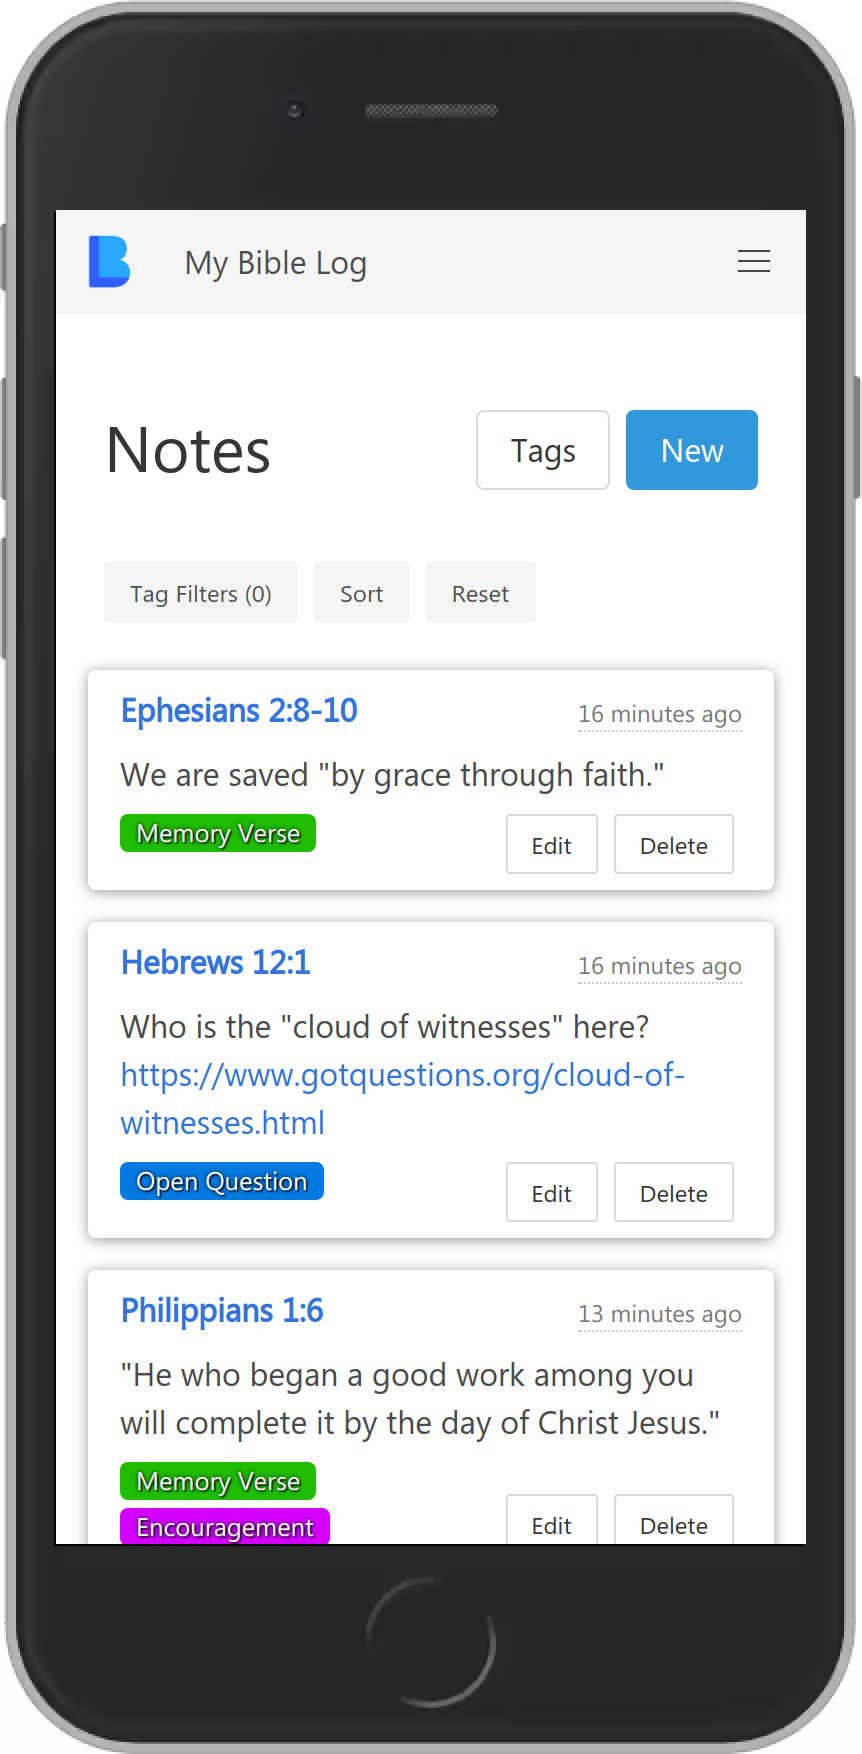 My Bible Log showing reading notes